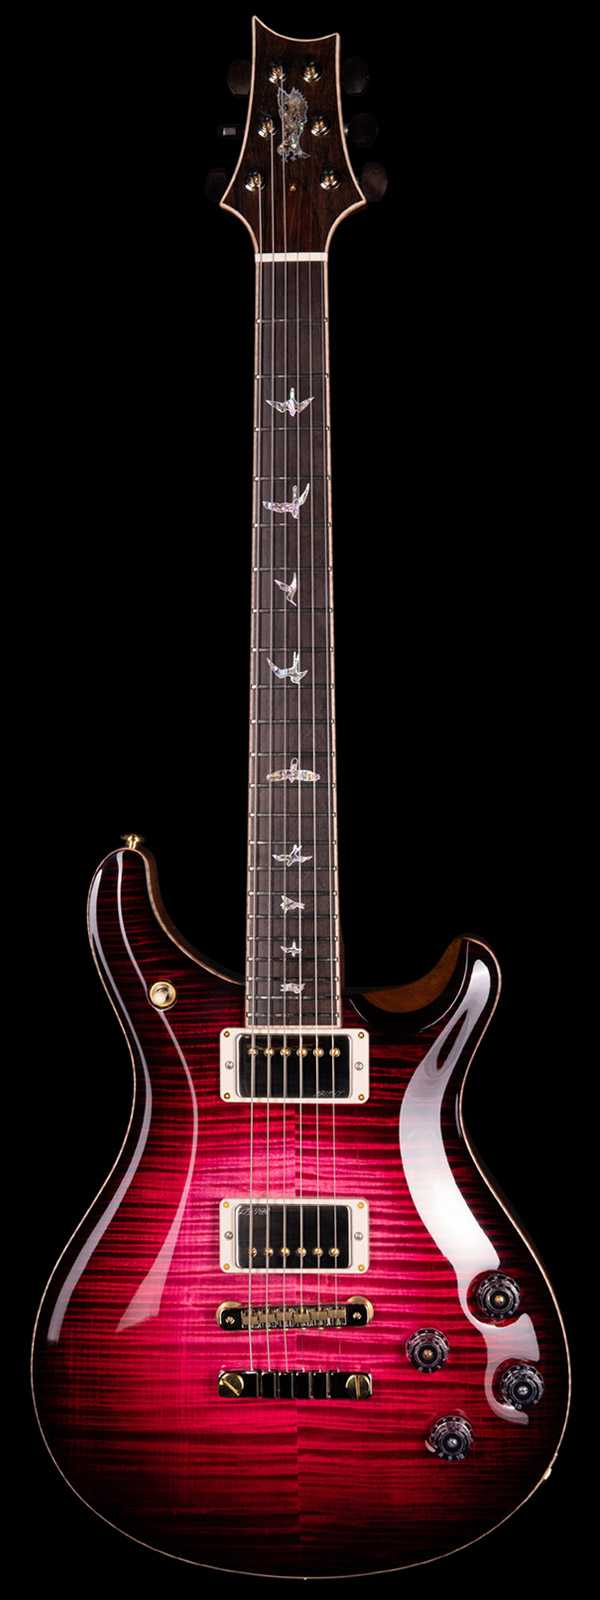 PRS Private Stock 8523 McCarty 594 Flame Maple Top Brazilian Board Graveyard Red Glow